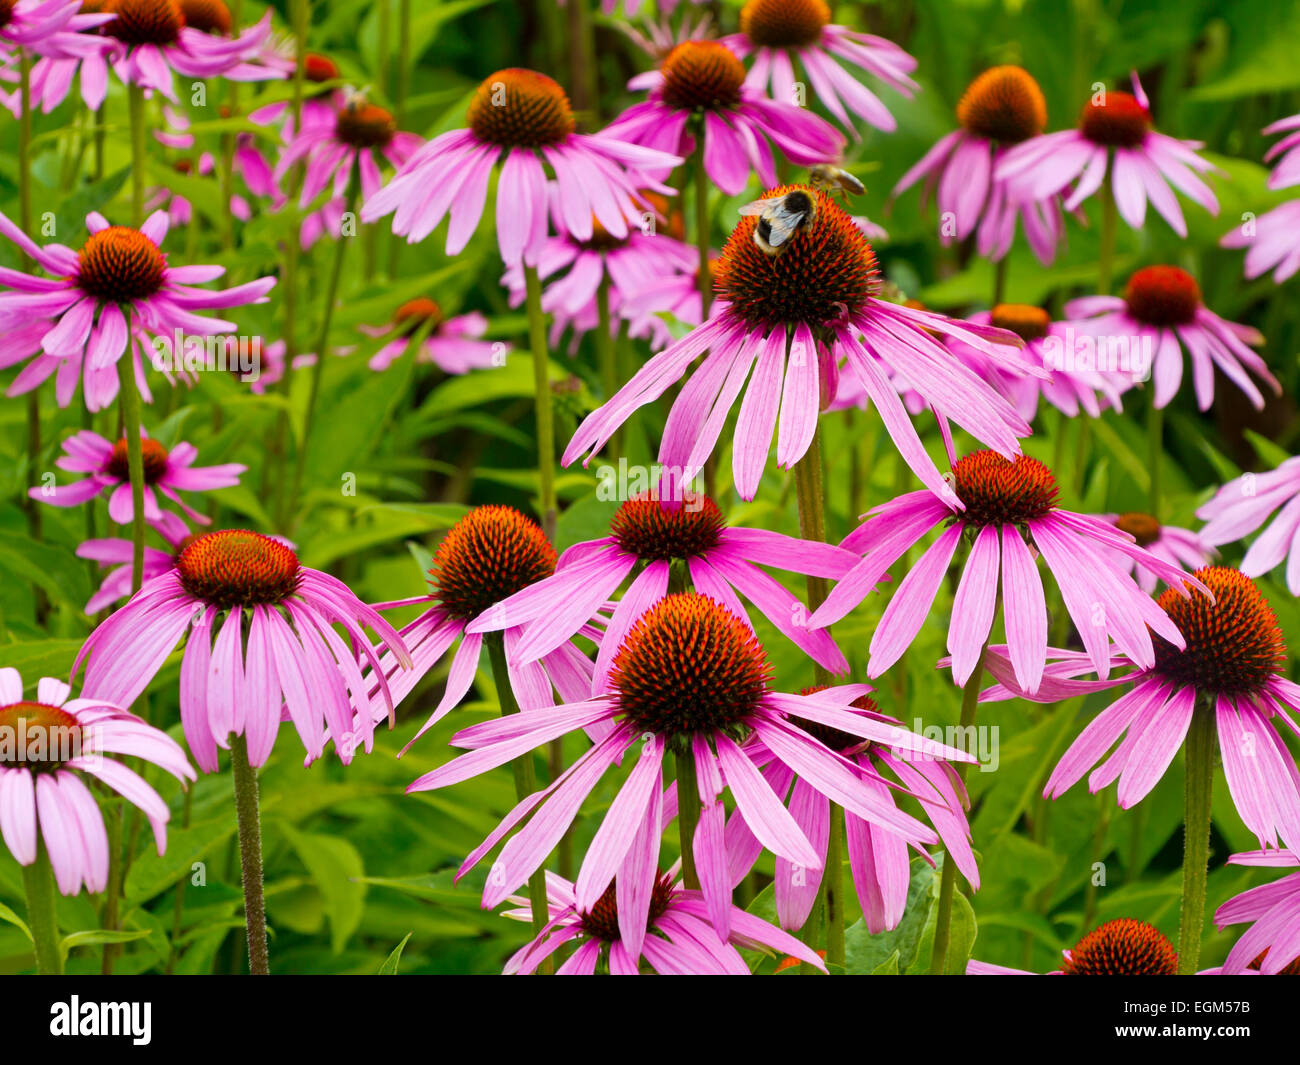 biene auf echinacea purpurea blumen wachsen im sommer eine. Black Bedroom Furniture Sets. Home Design Ideas